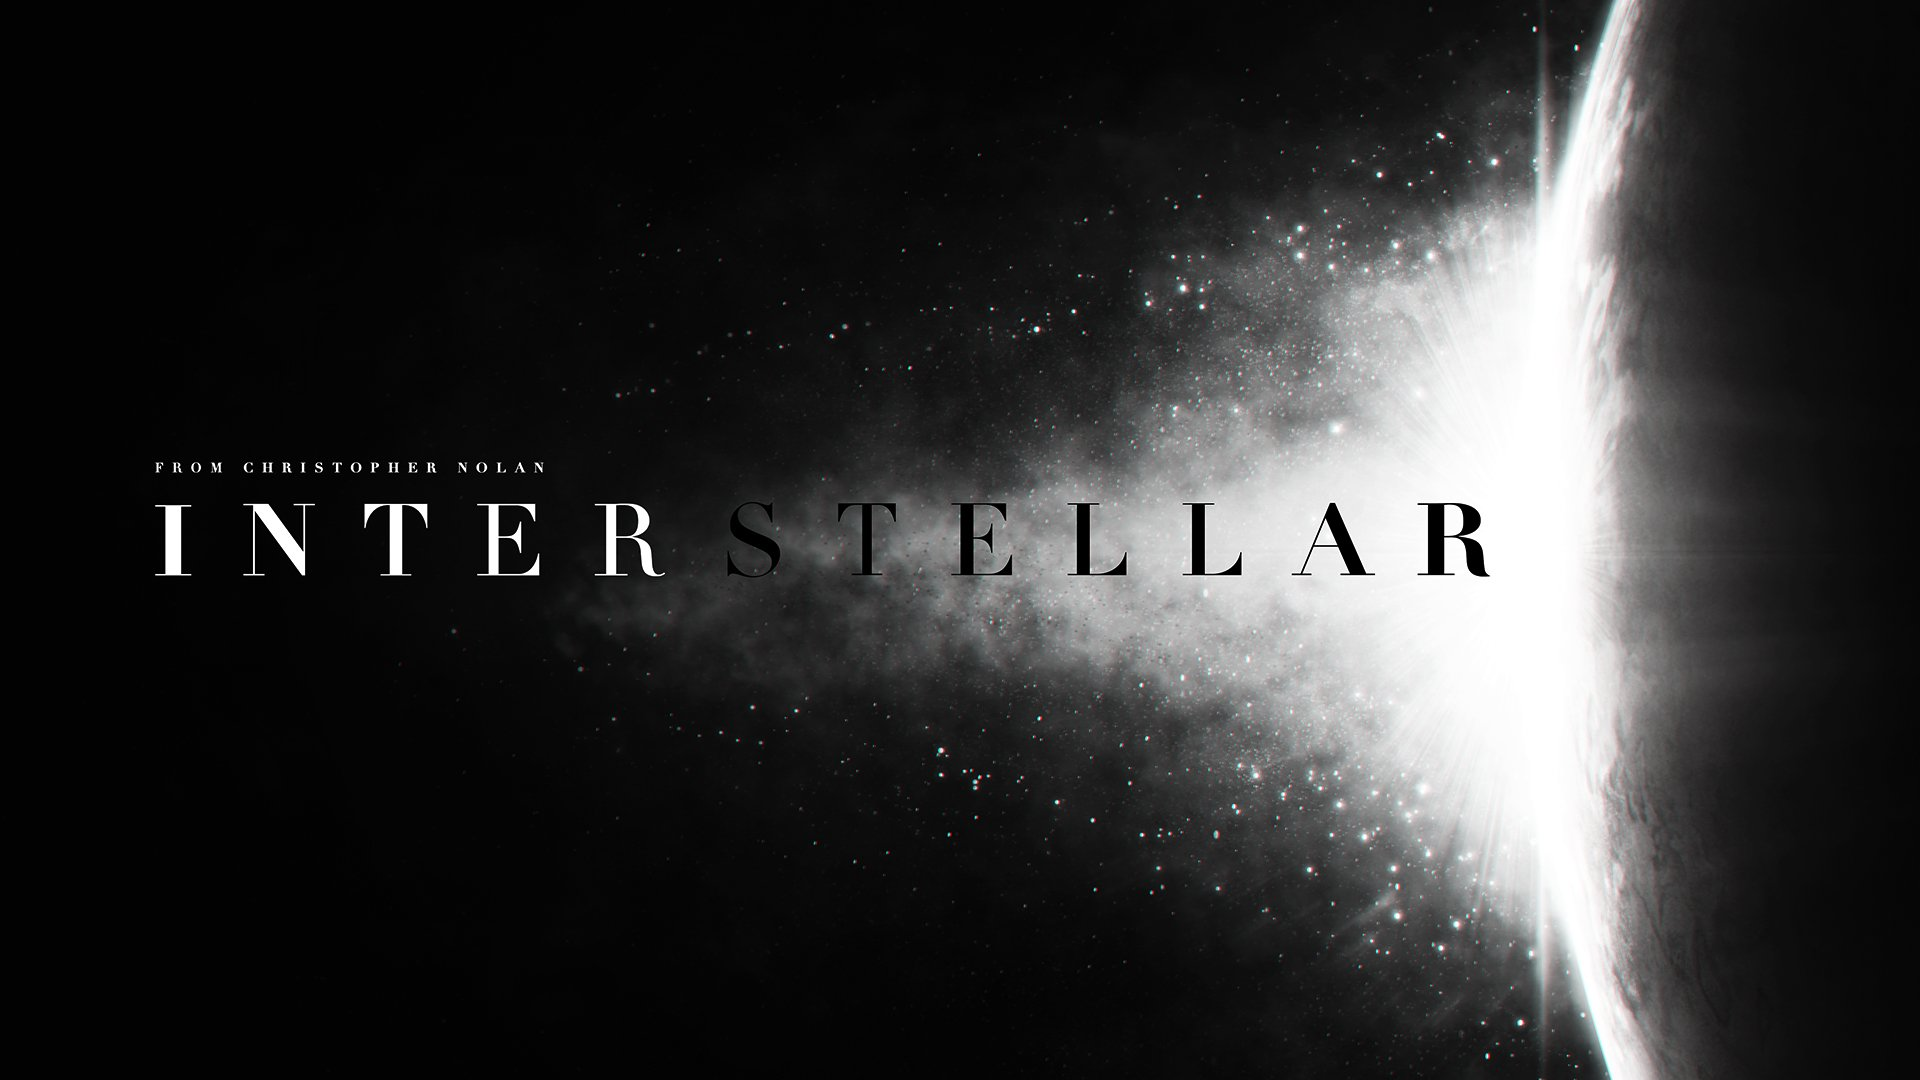 mystery sci fi futuristic film poster space stars wallpaper background 1920x1080